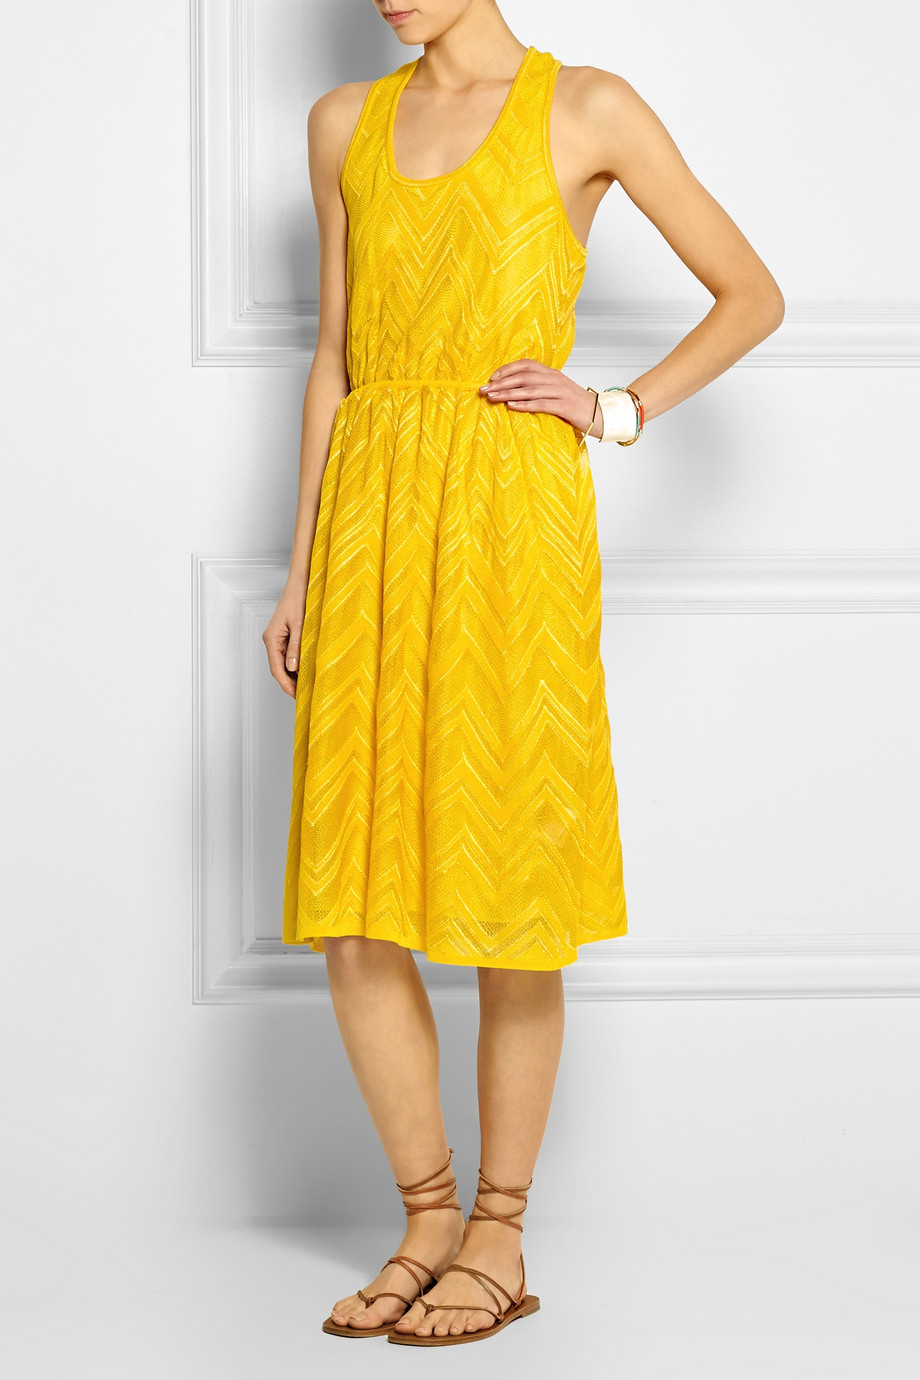 M missoni yellow dress